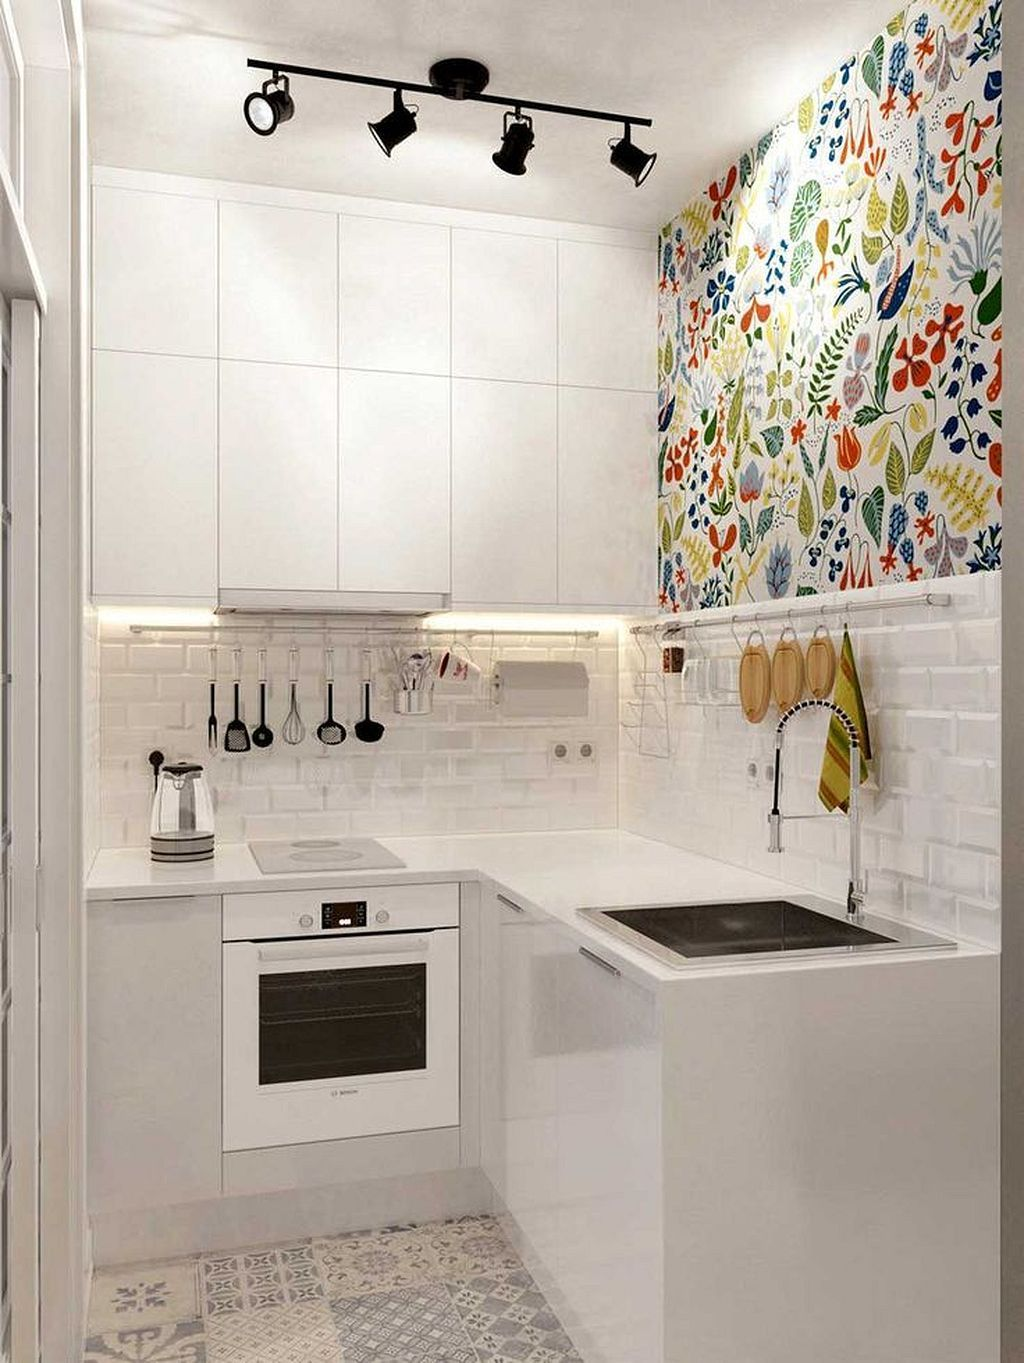 Small House With Tiny Kitchen Space Ideas 41 Tiny Kitchen Design Kitchen Design Small Kitchen Remodel Small